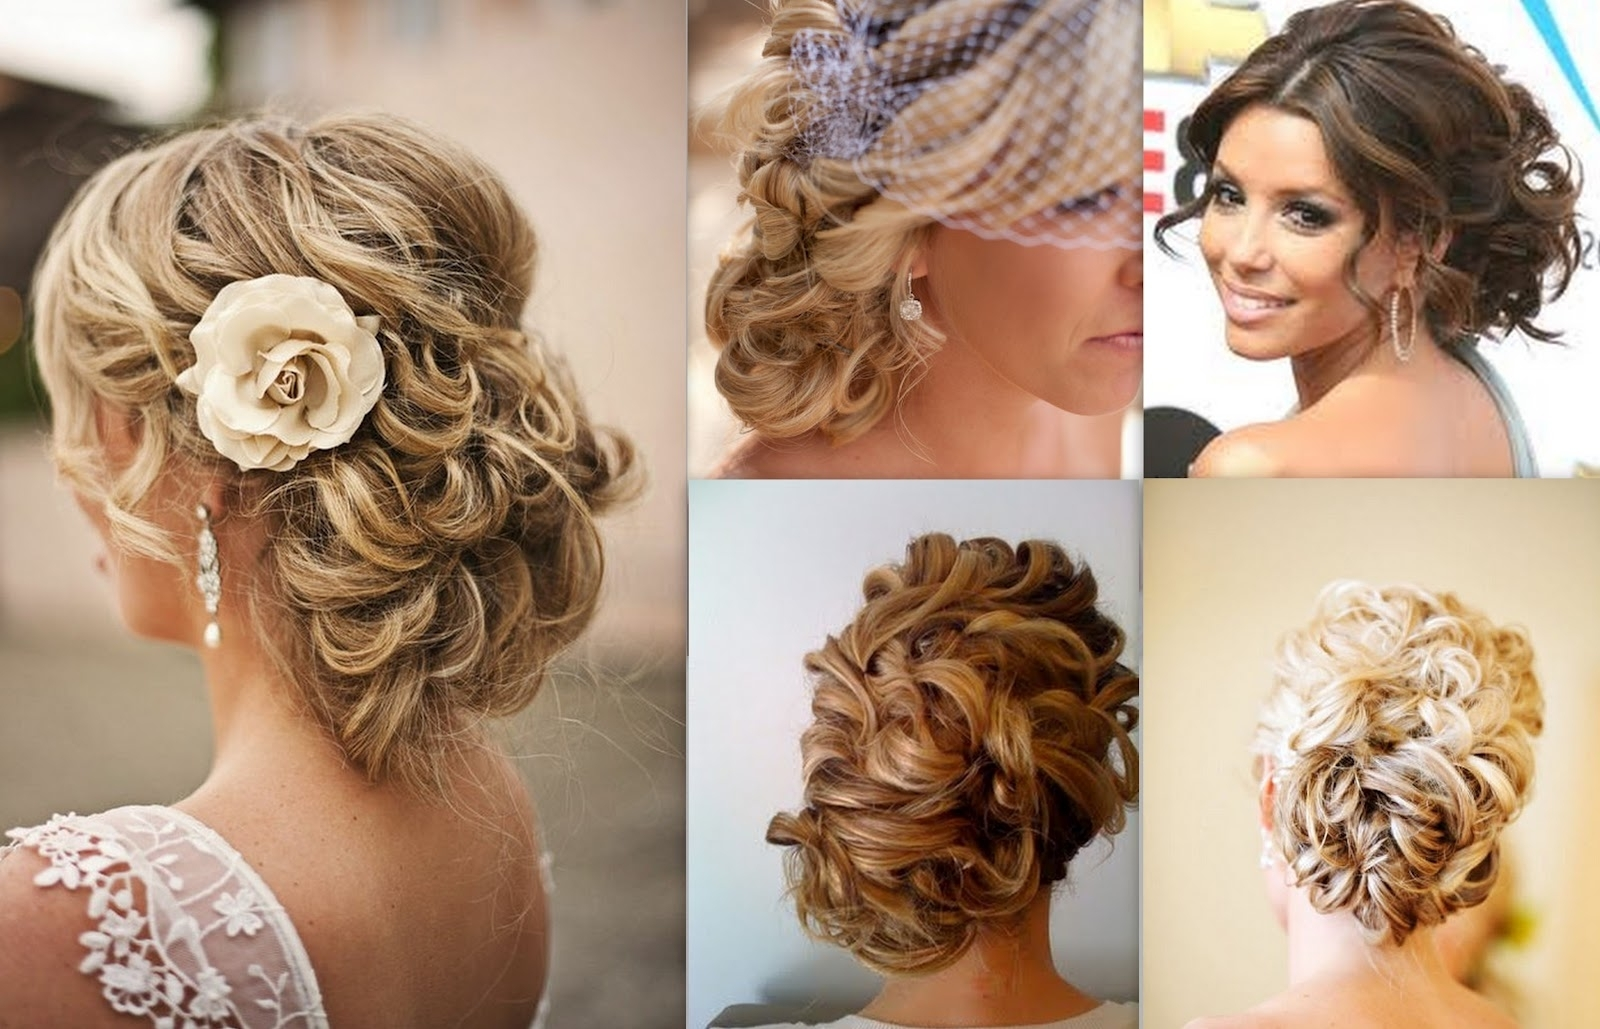 Wedding Hairstyles Curls To The Side (View 12 of 15)